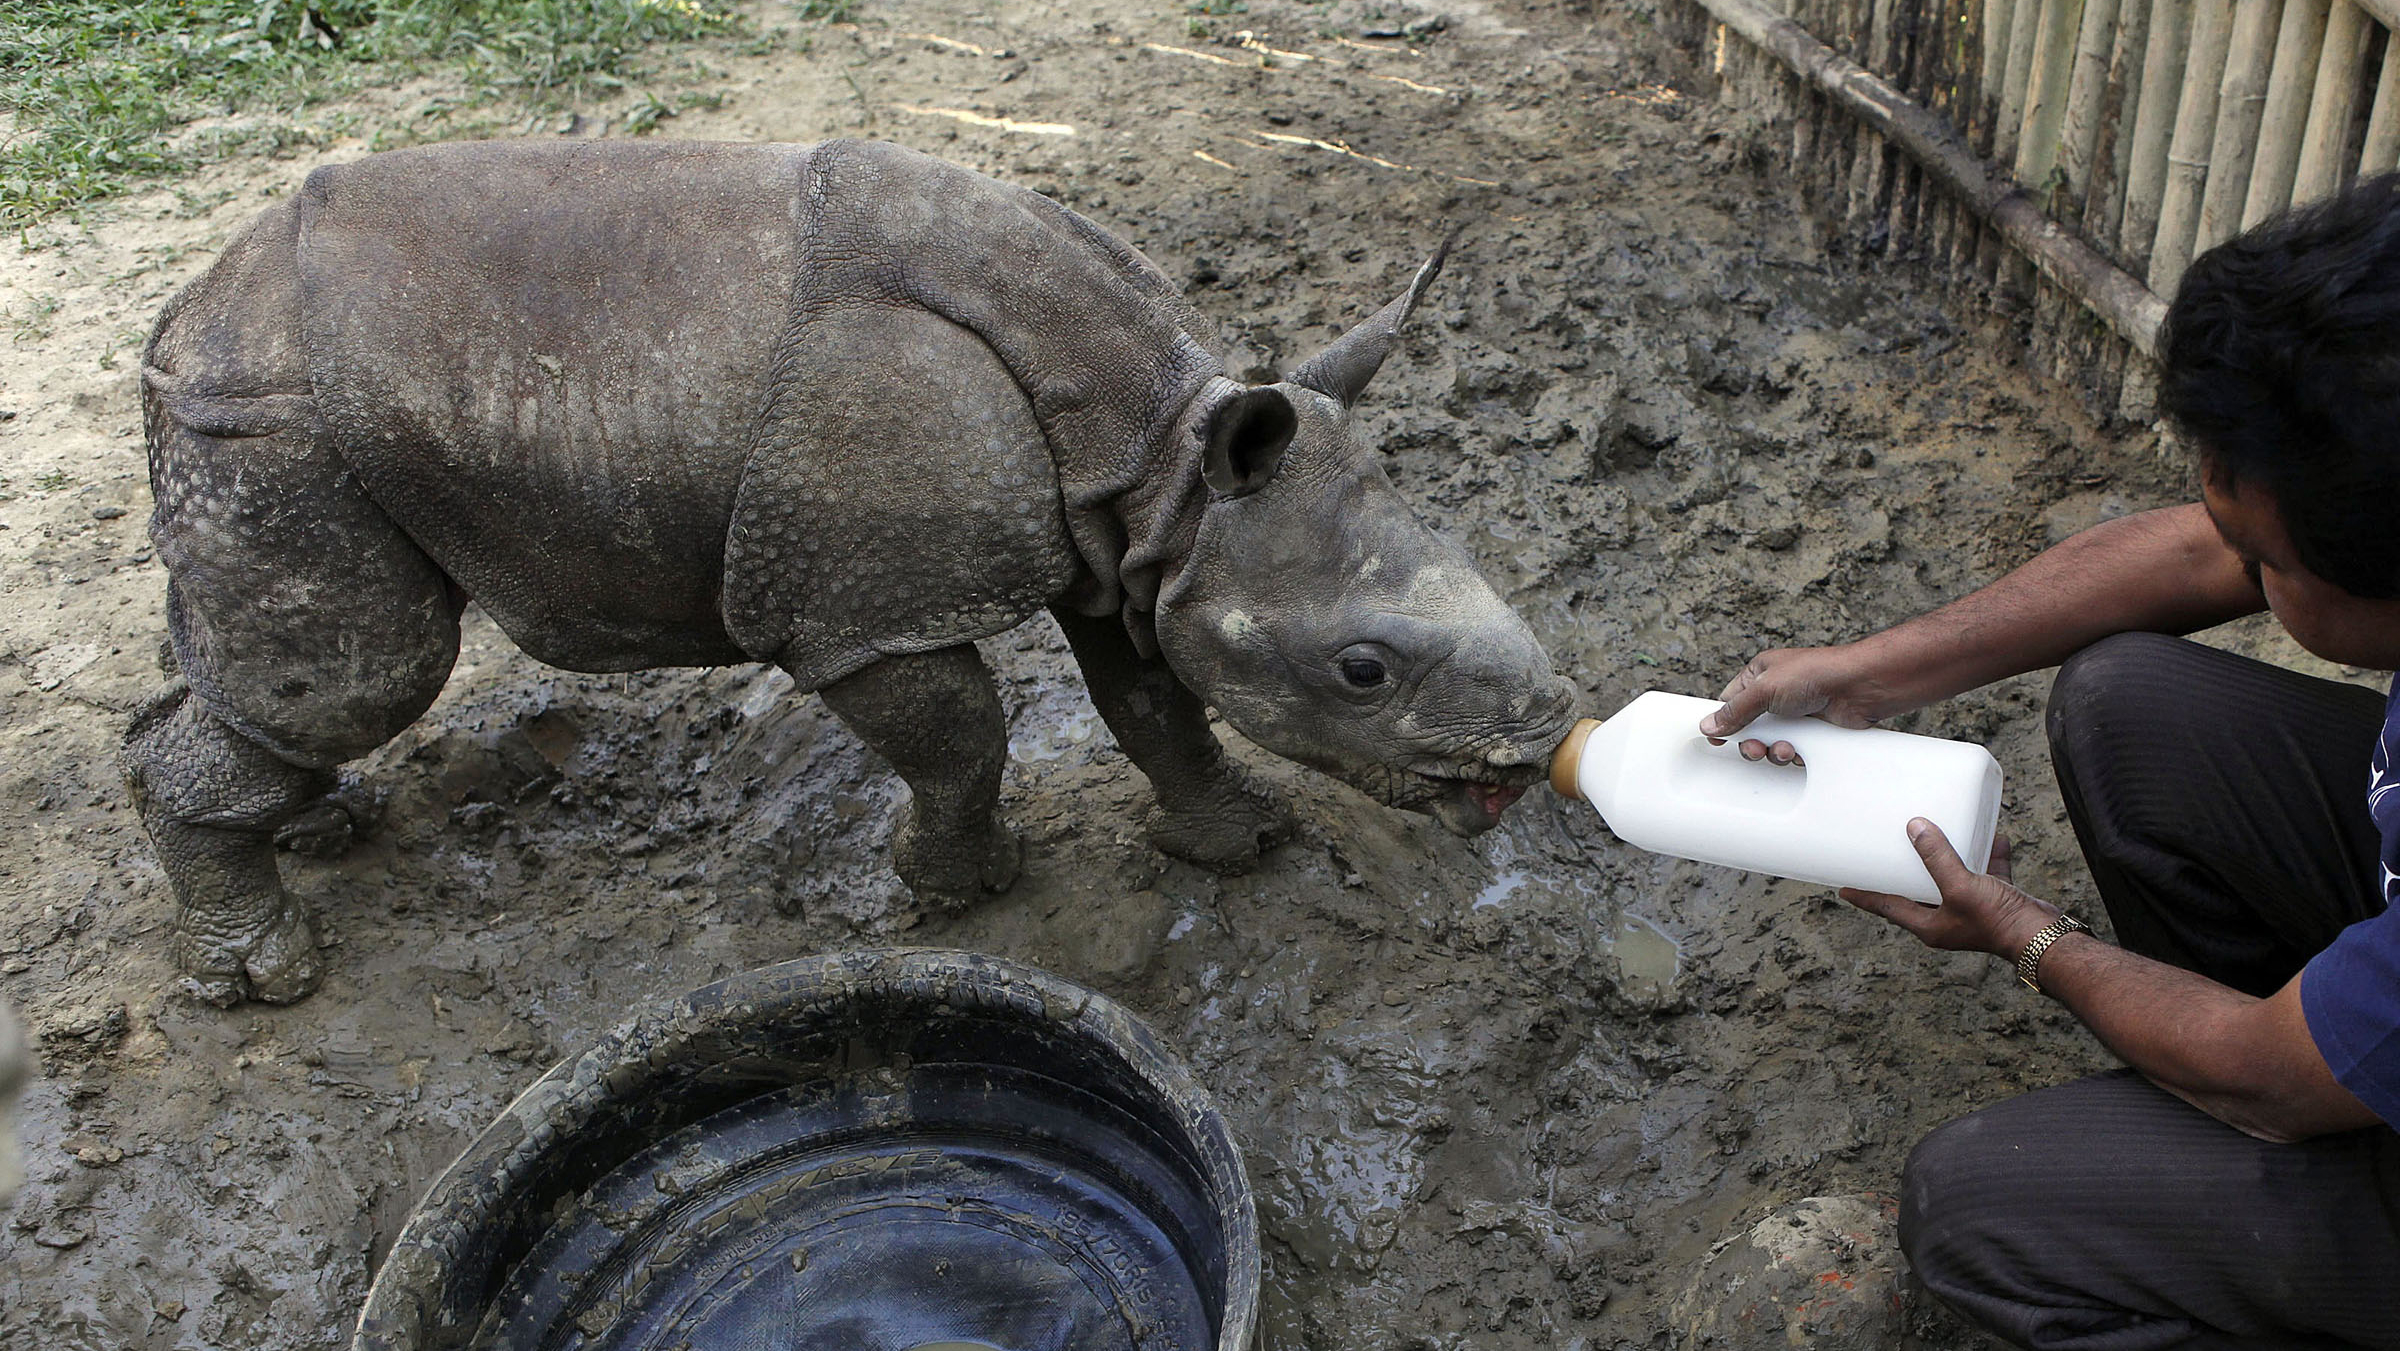 "In this Sunday, Dec. 2, 2012 photo, a park official feeds a two-and-half month old male orphan one-horned rhinoceros calf rescued during recent floods walks at a rehabilitation center inside the Kaziranga National Park, a wildlife reserve that provides refuge to more than 2,200 endangered Indian one-horned rhinoceros, in the northeastern Indian state of Assam. Even in this well protected reserve, where rangers follow shoot-to-kill orders, poachers are laying siege to ""Fortress Kaziranga,"" attempting to sheer off the animals' horns to supply a surge in demand for purported medicine in China that's pricier than gold. A number of guards have been killed along with 108 poachers since 1985 while 507 rhino have perished by gunfire, electrocution or spiked pits set by the poachers, according to the park. (AP Photo/Anupam Nath"